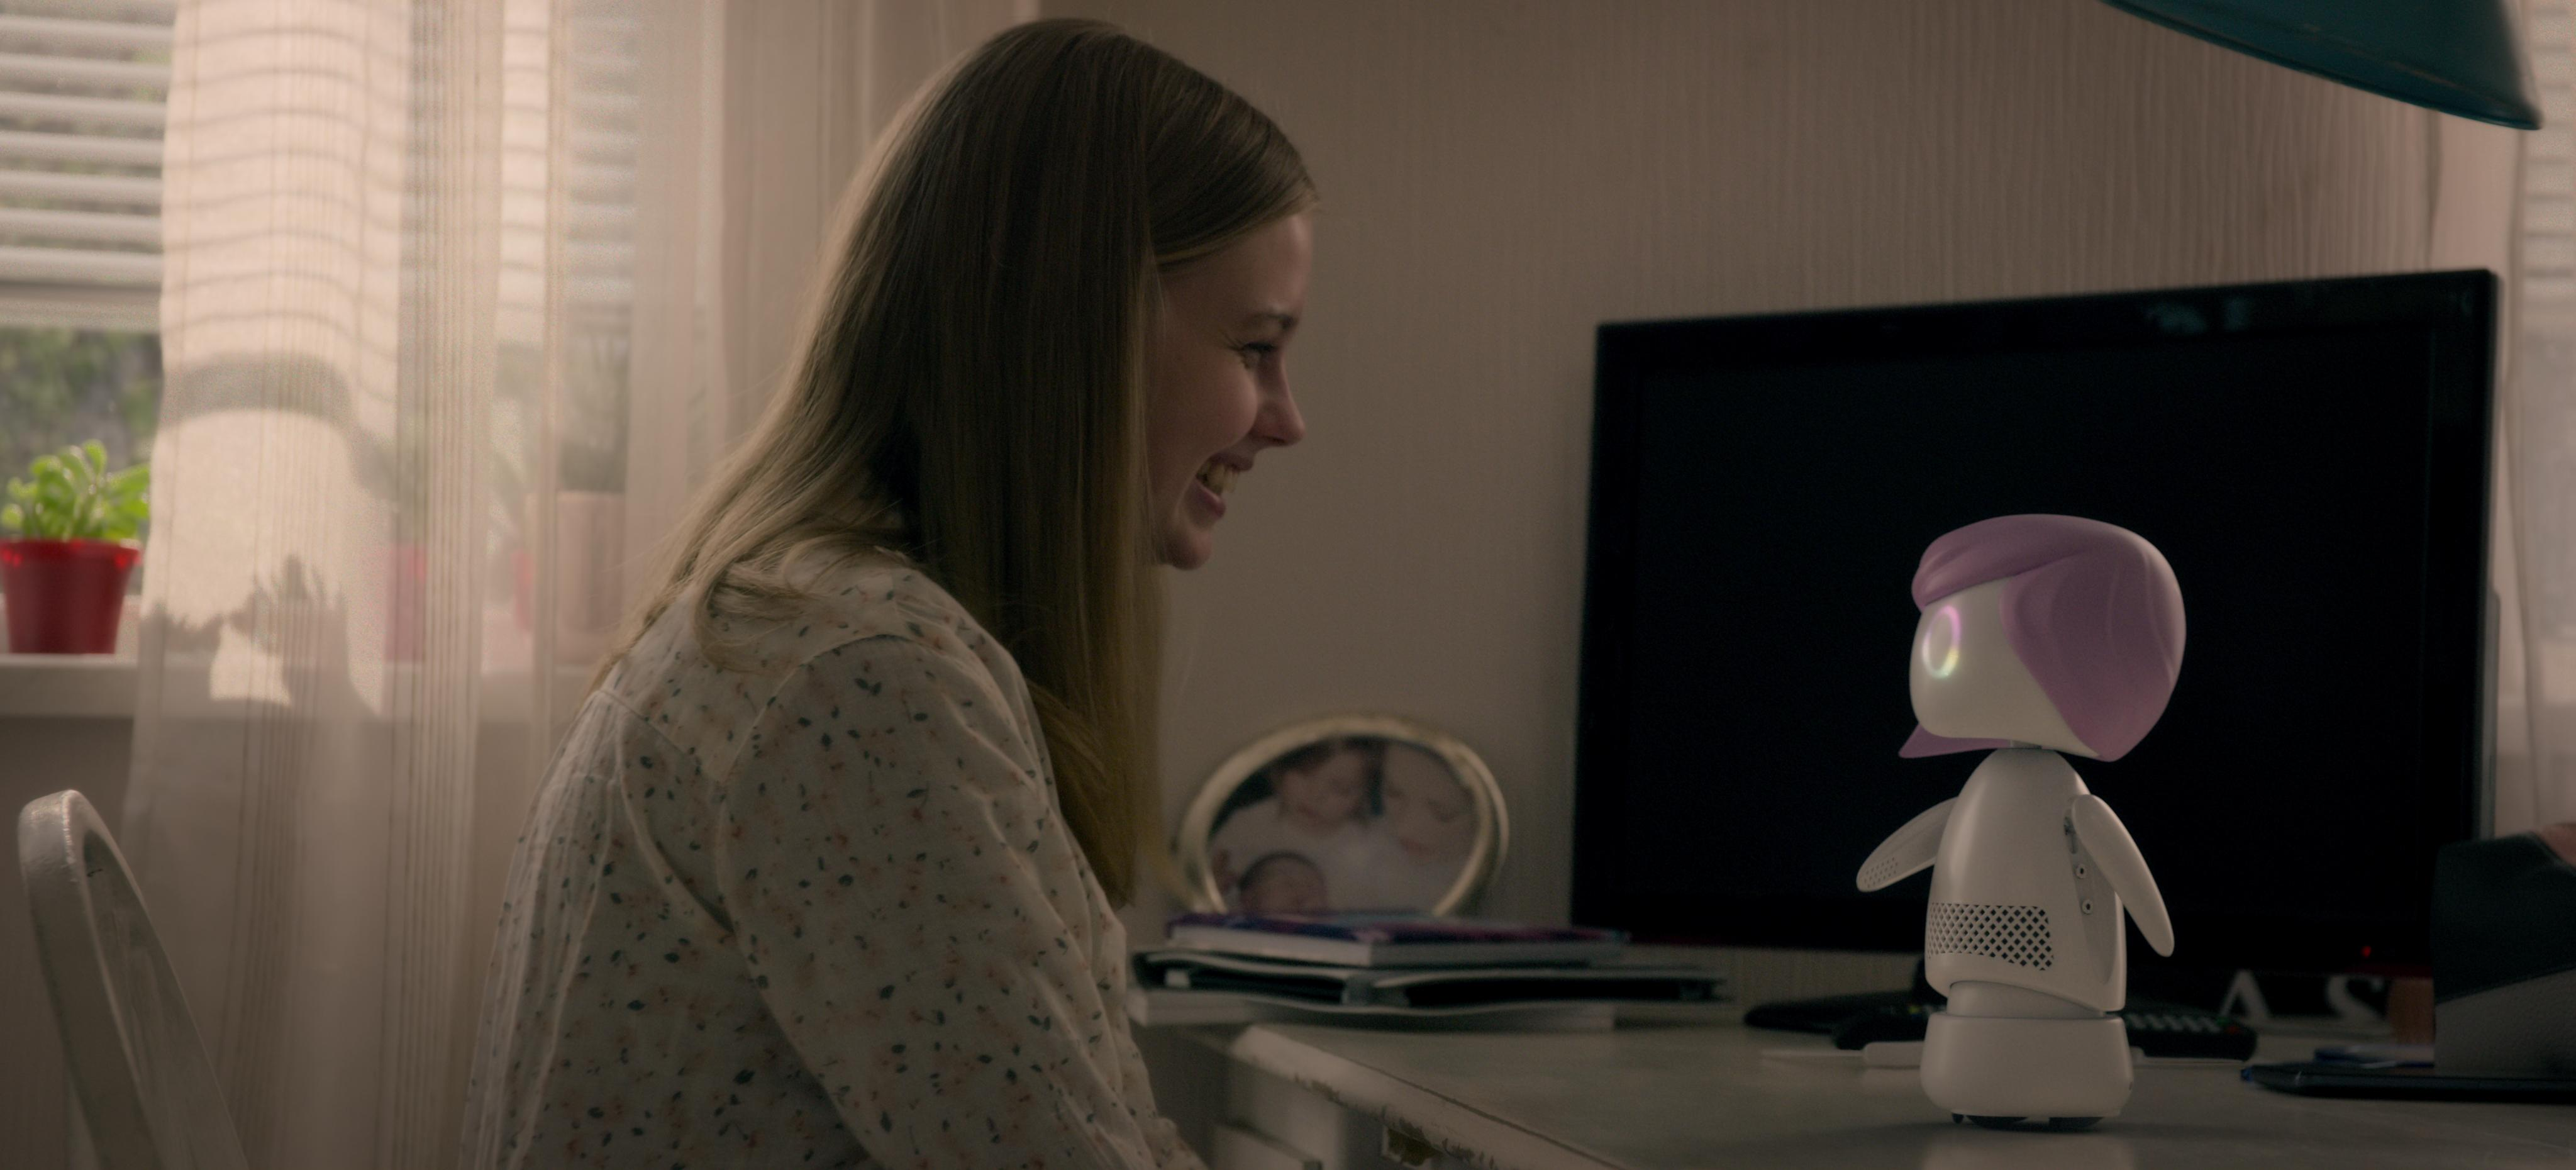 Angourie Rice in Black Mirror (2011)